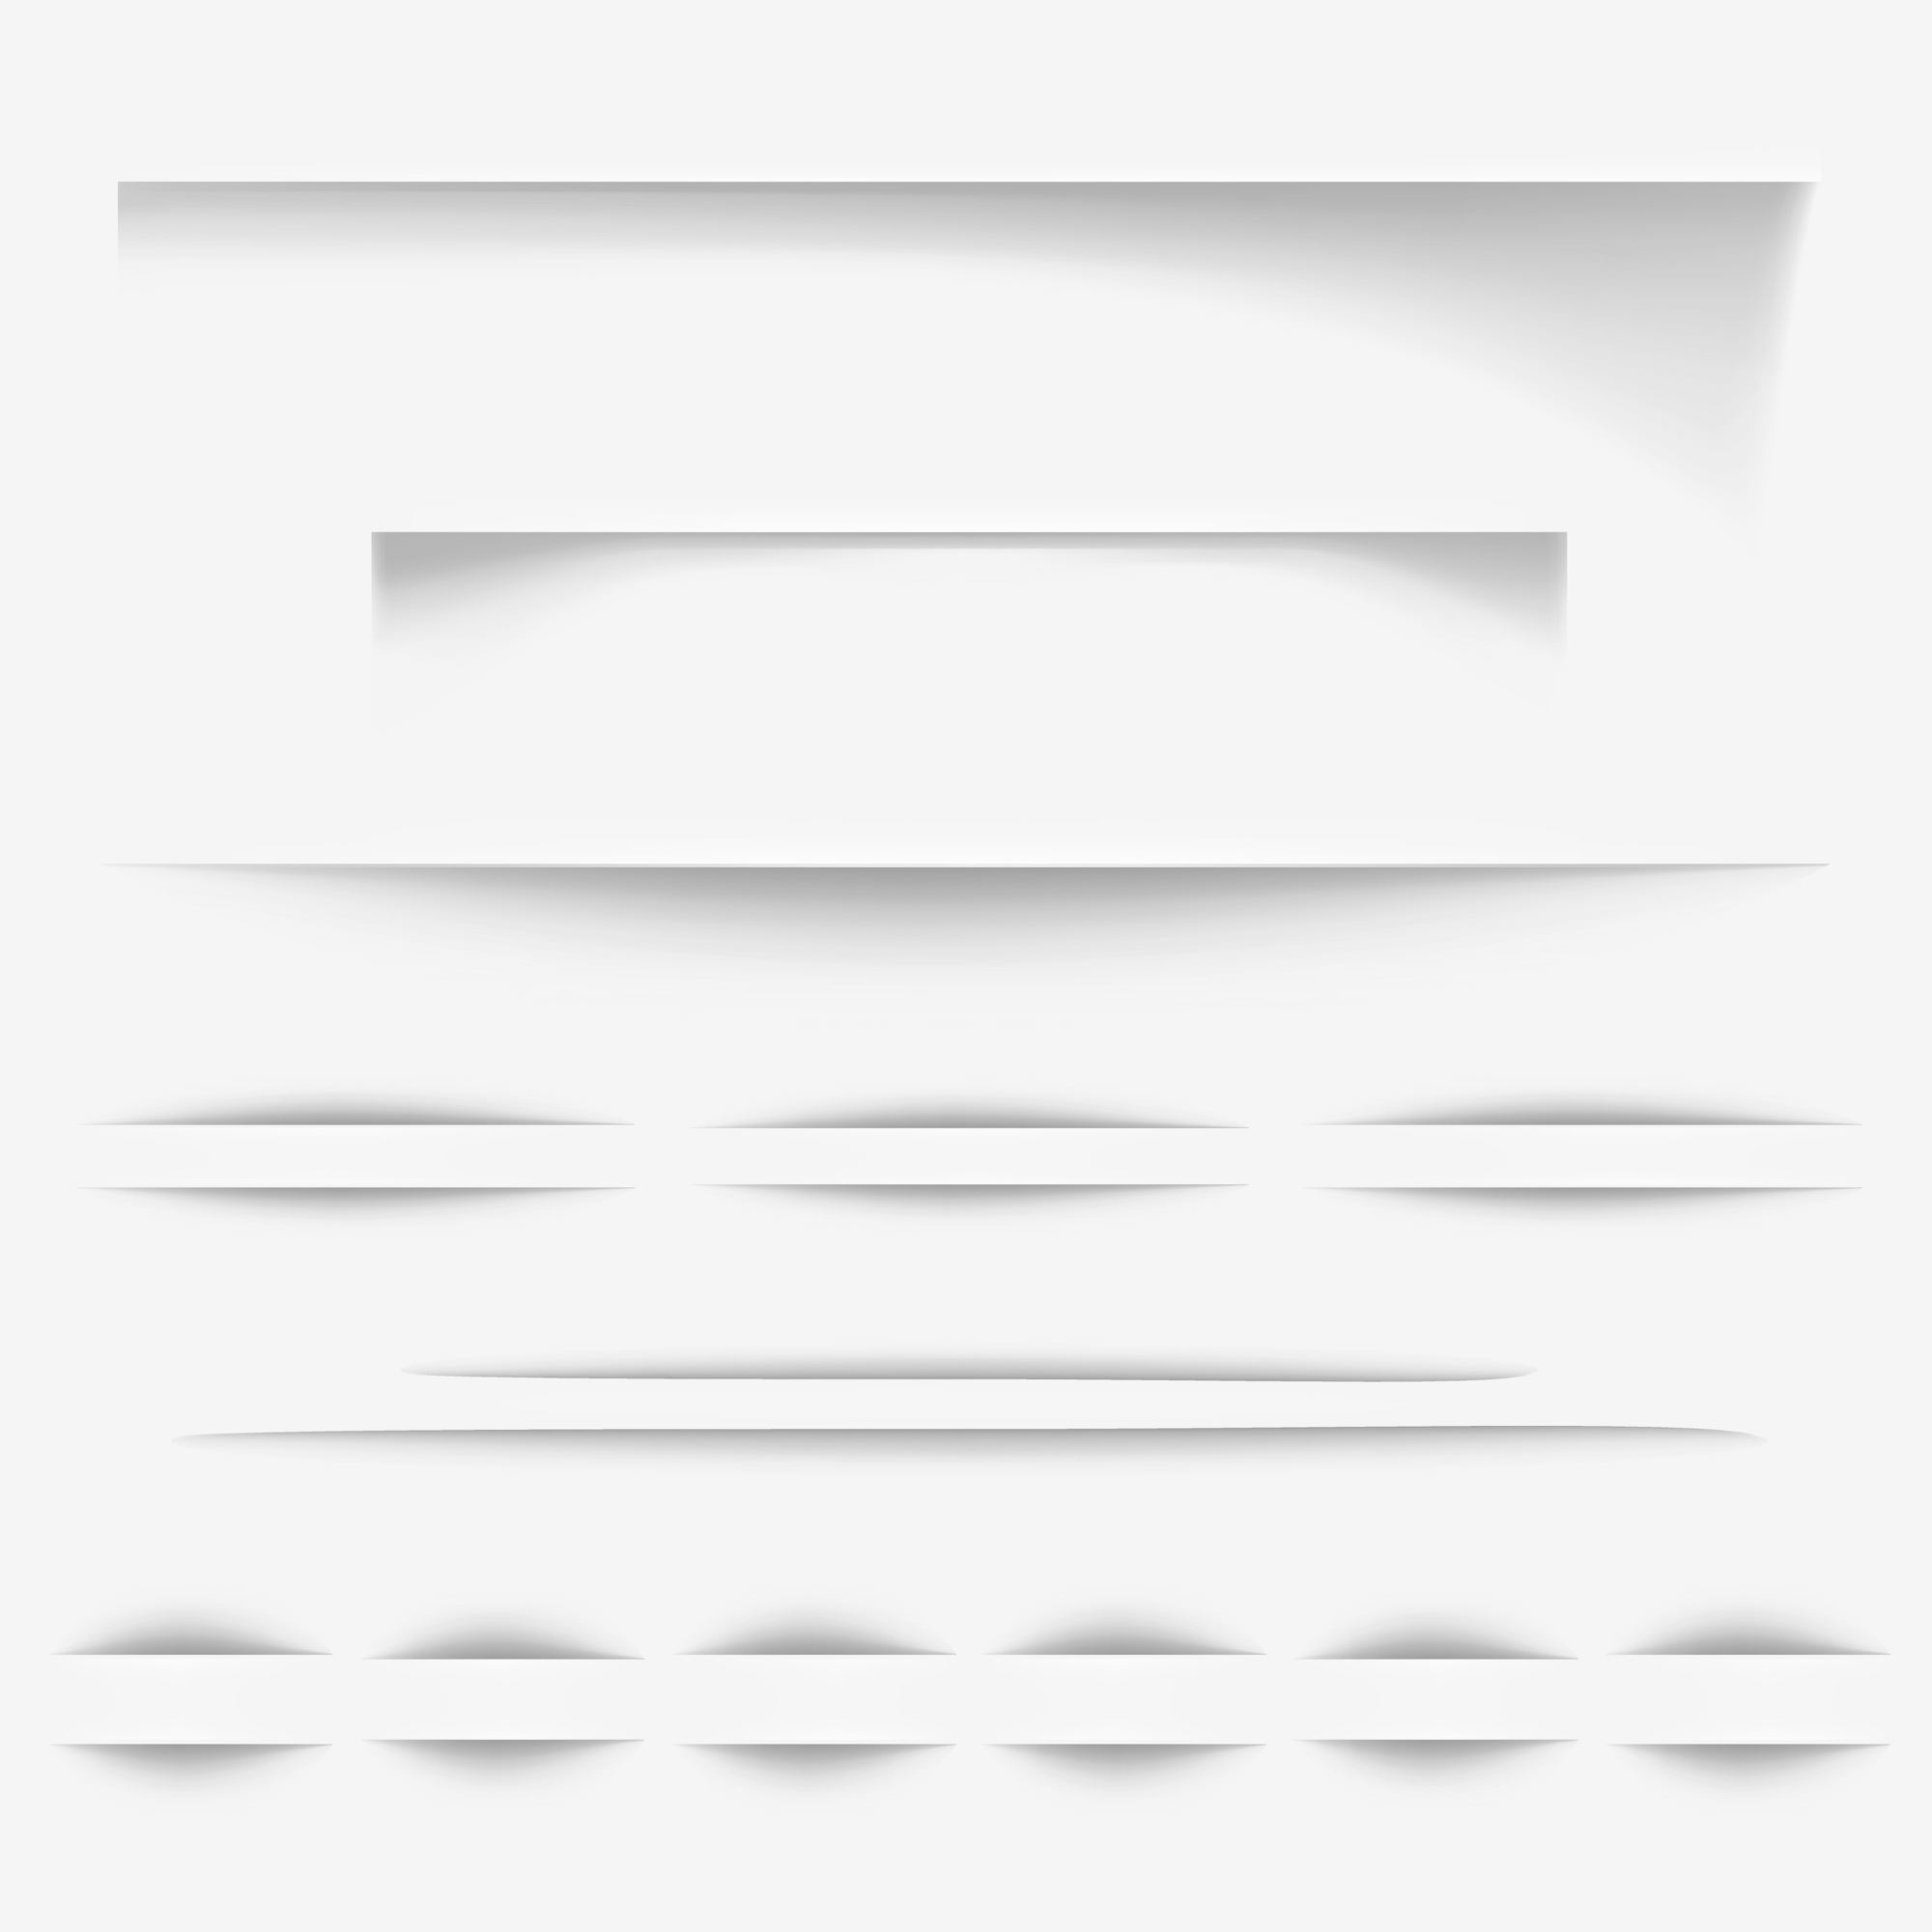 Paper shadows effect illustration or realistic white page borders for web site